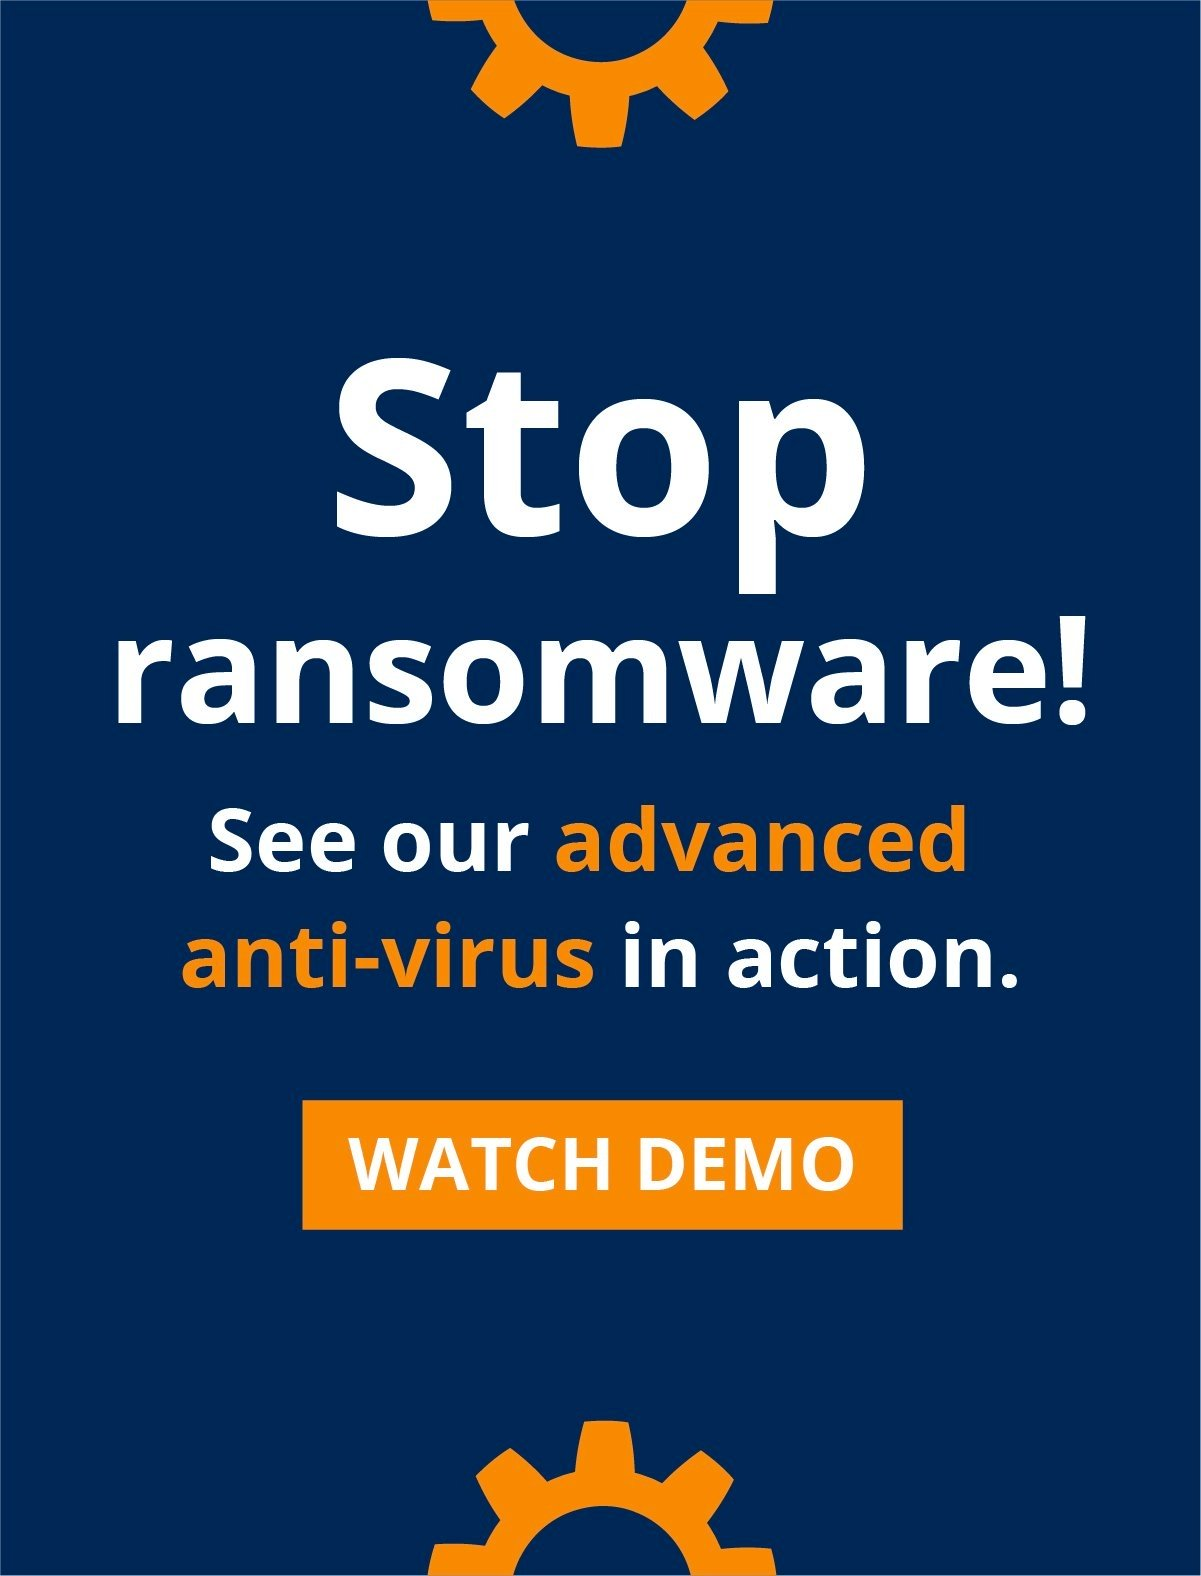 Watch our advanced anti-virus solution stop ransomware.